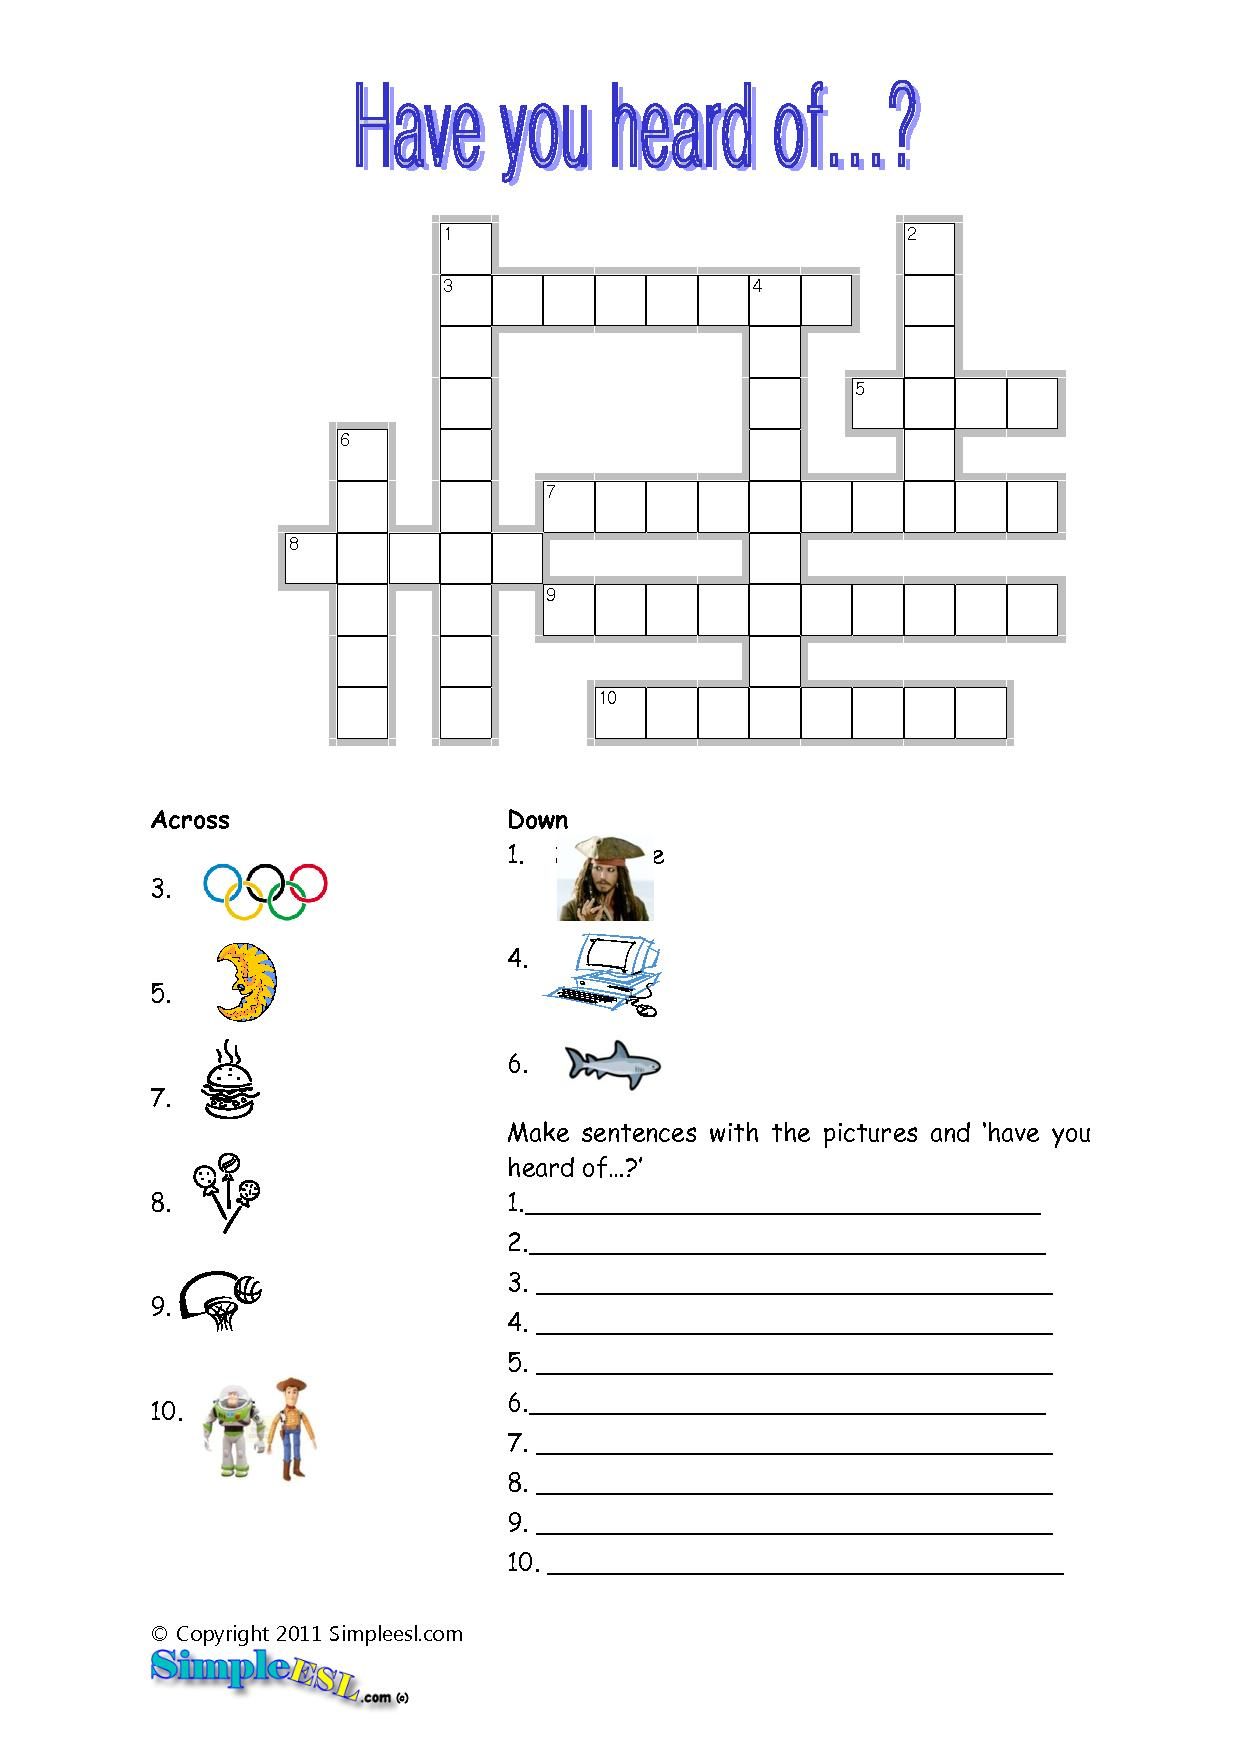 15 Best Photos Of Esl Printable Worksheets Crossword - Printable - Printable Crossword Puzzles For Esl Students